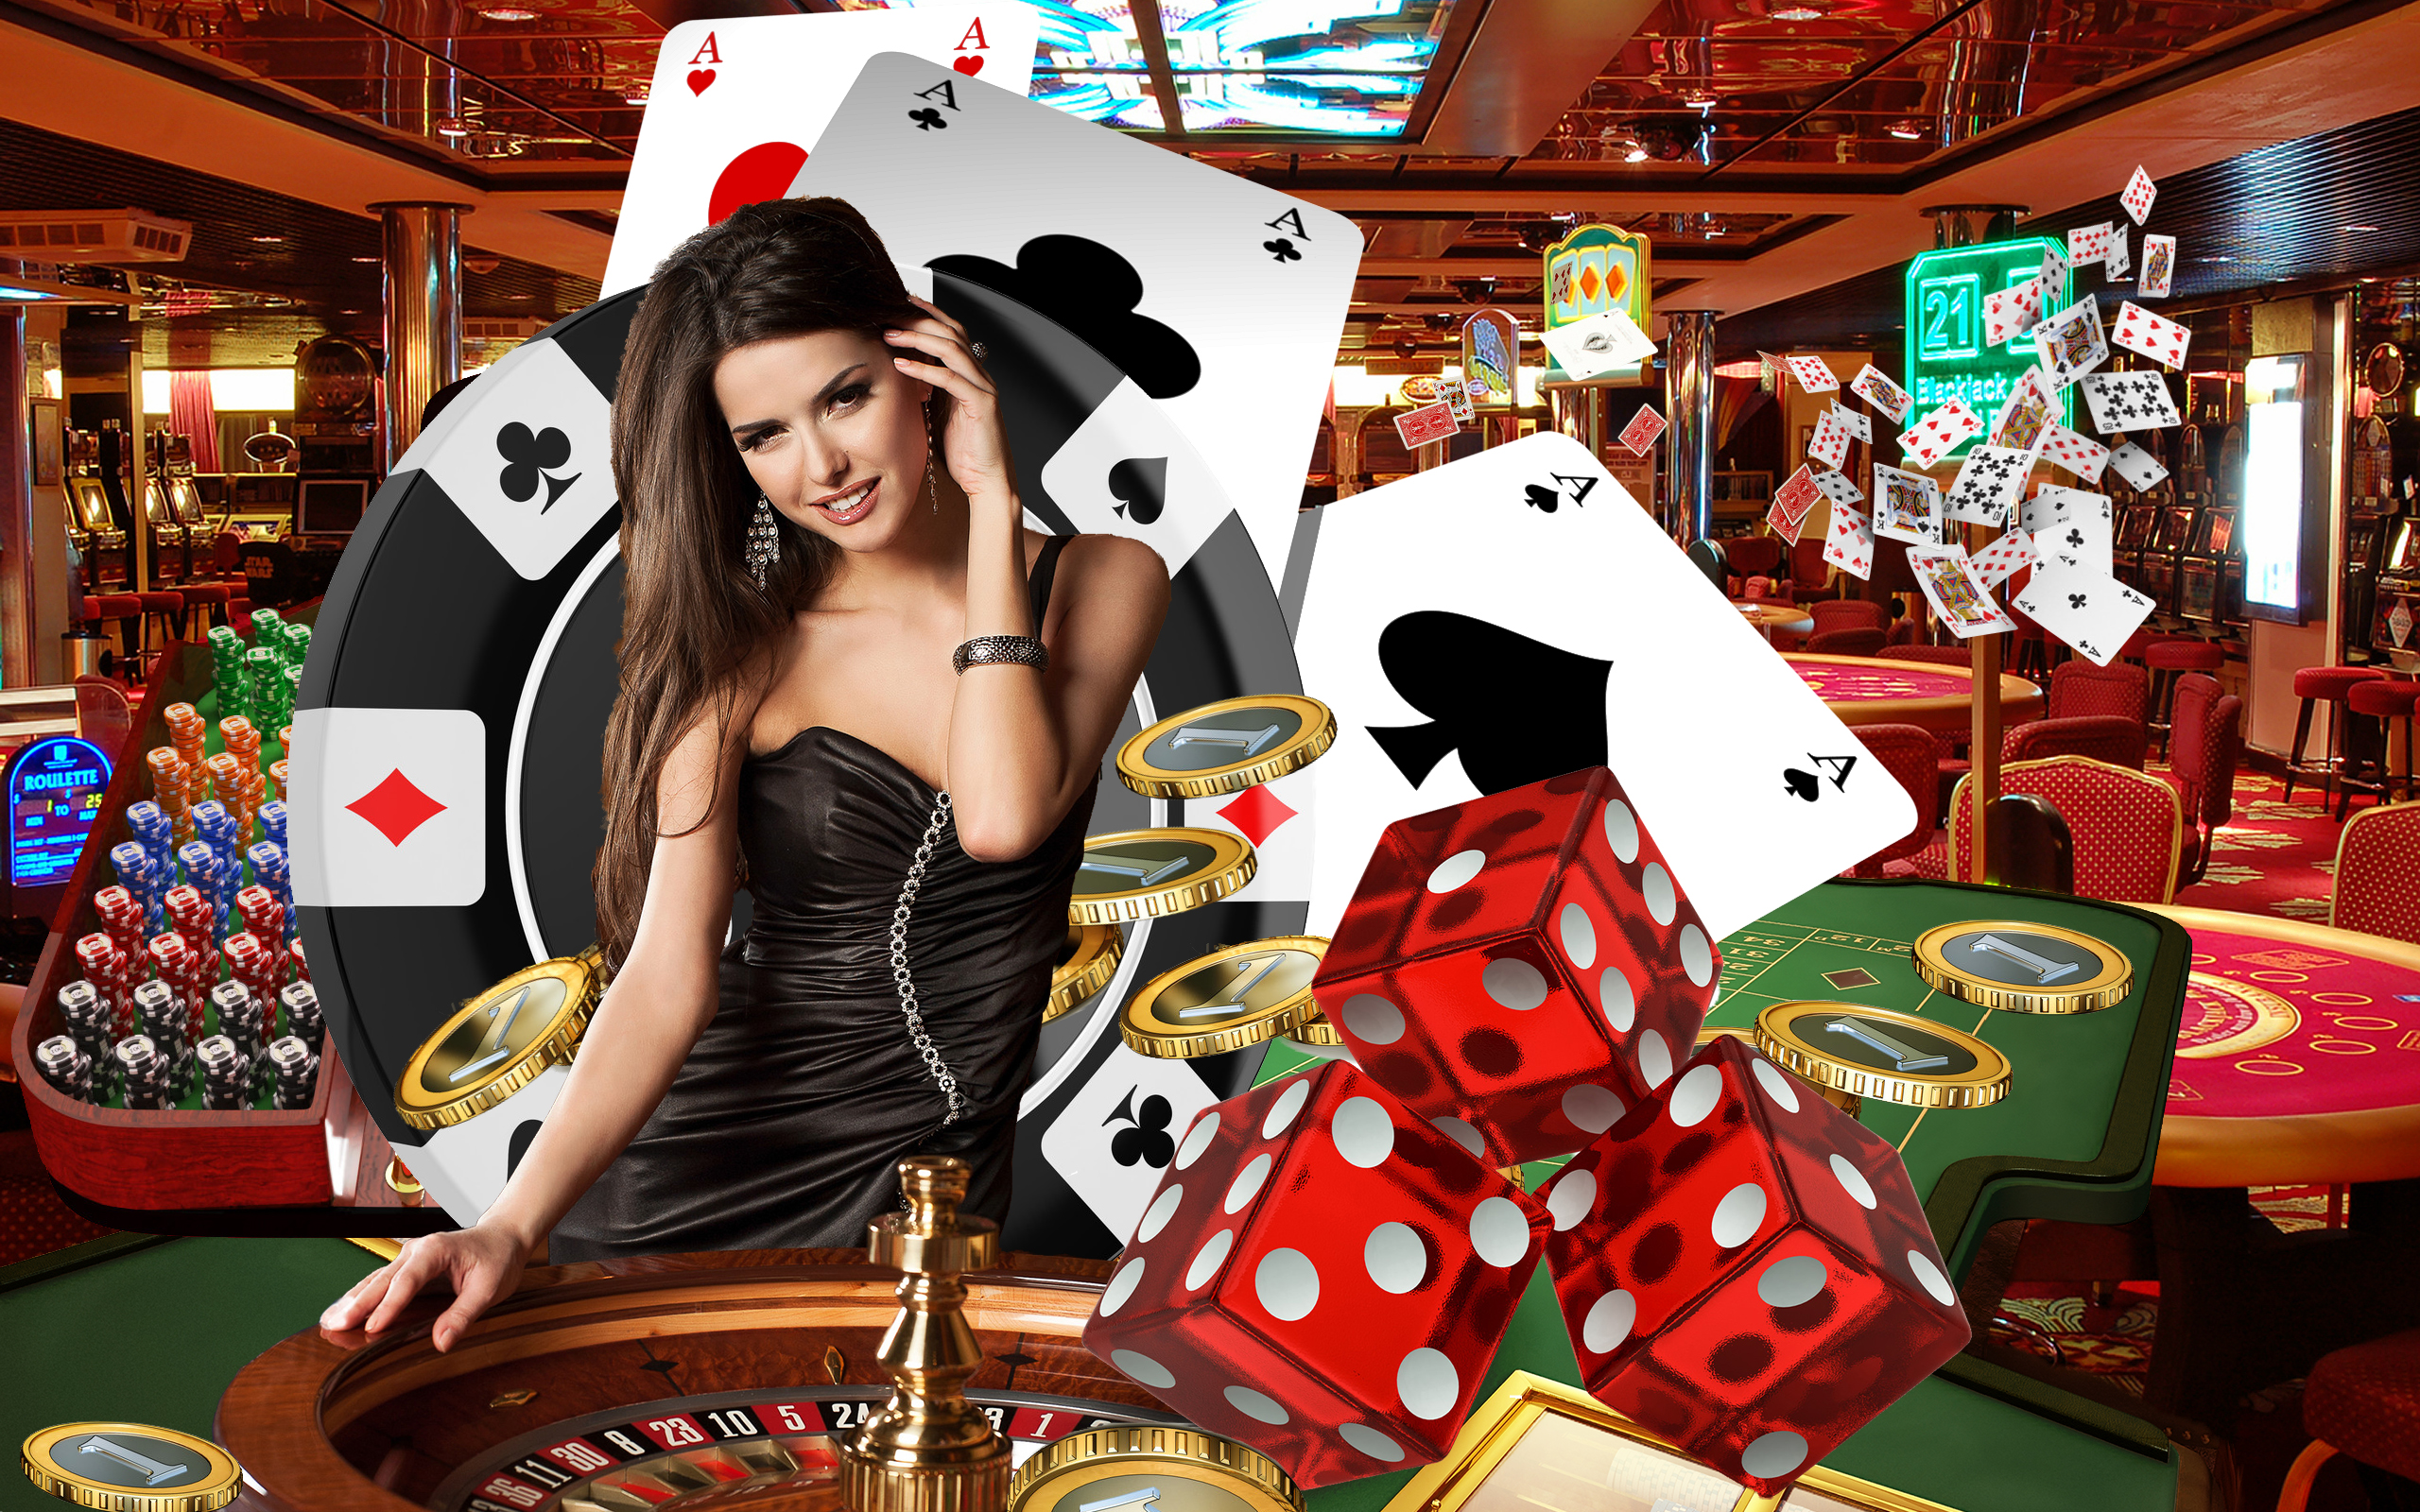 purchase online casino software